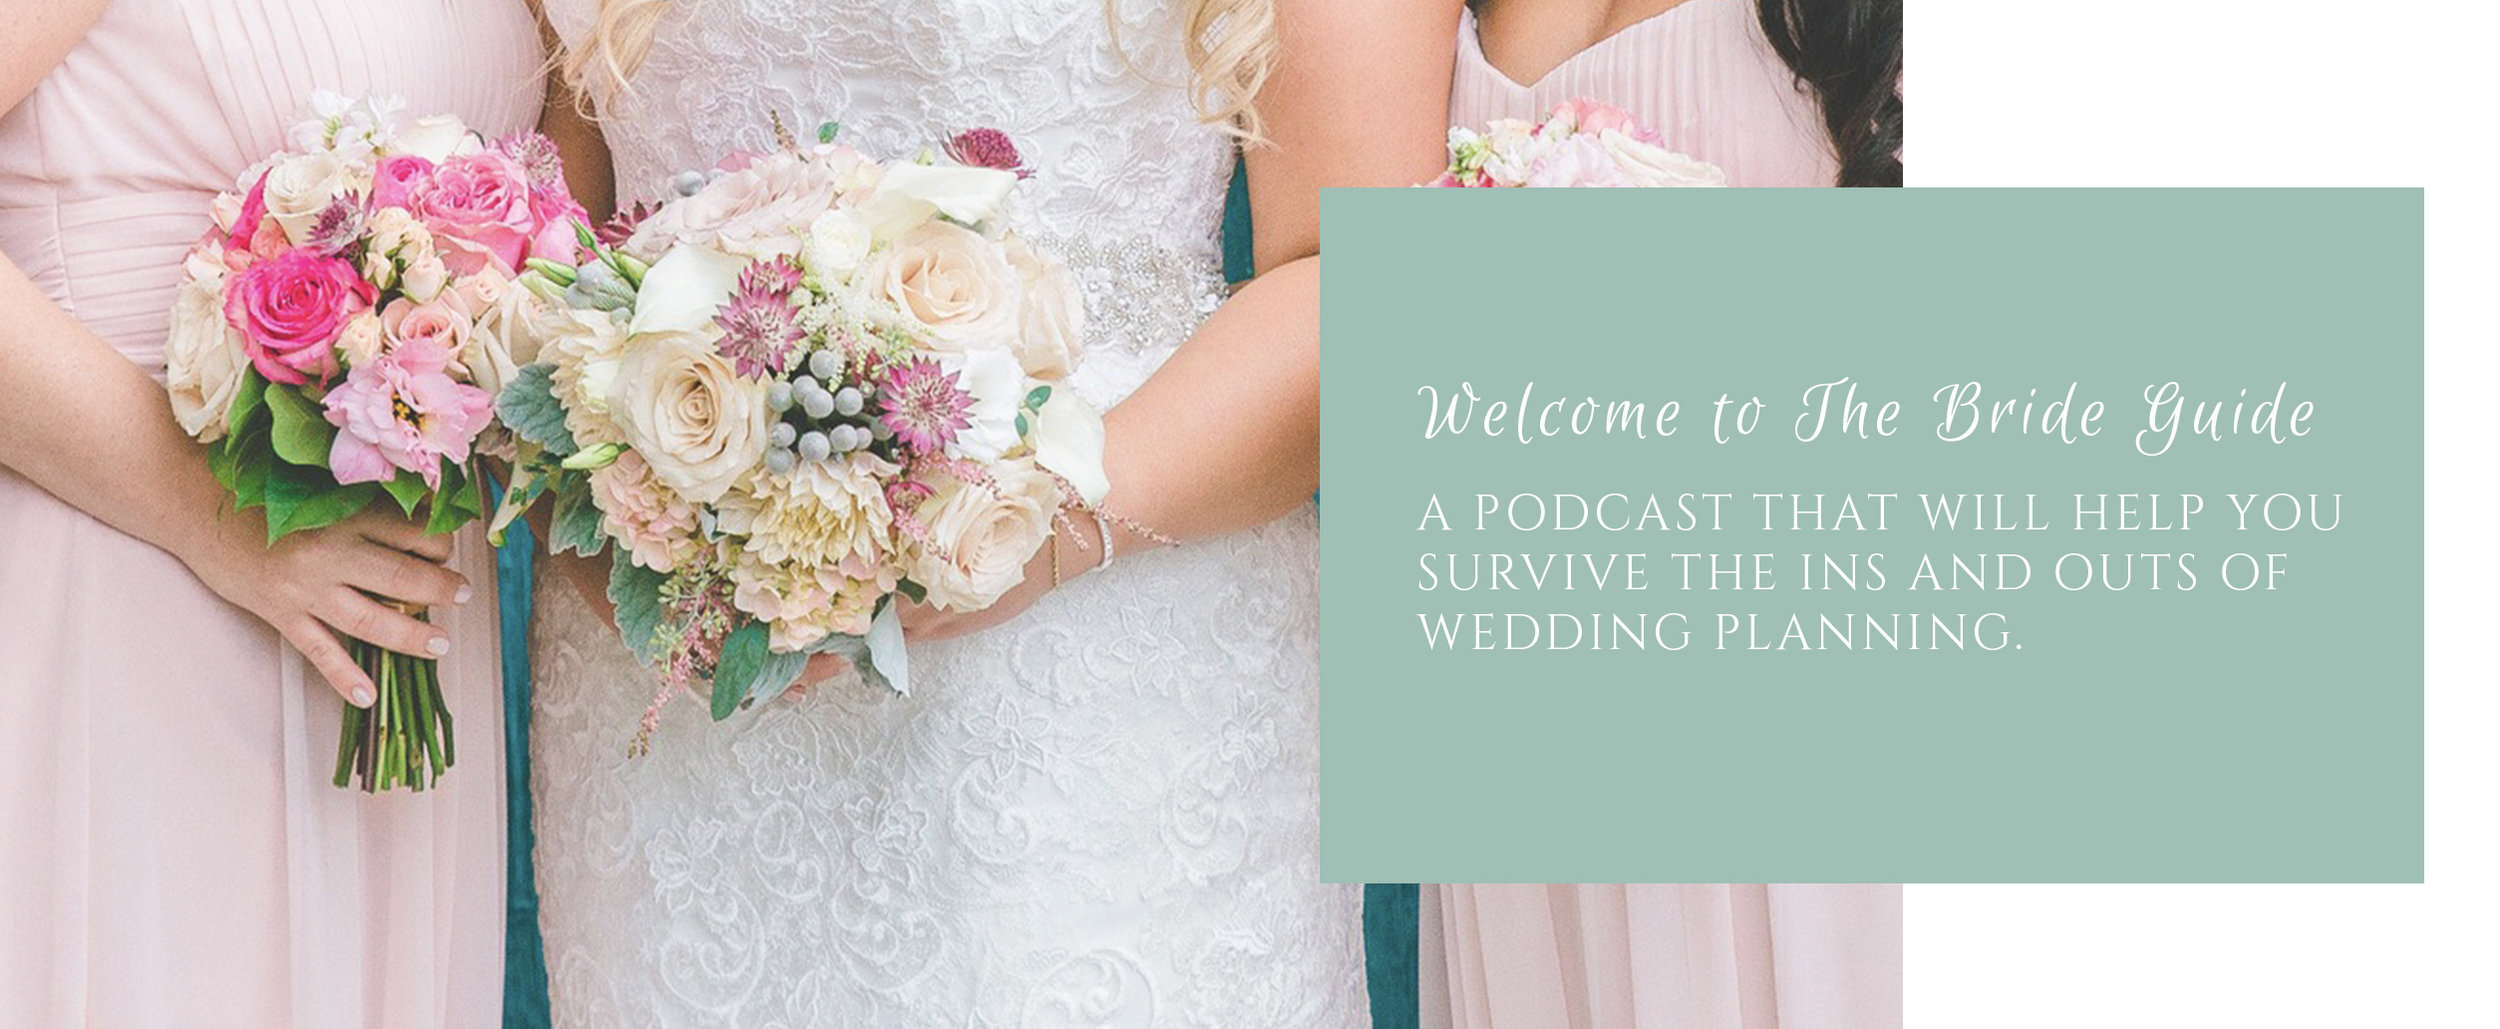 The Bride Guide Podcast